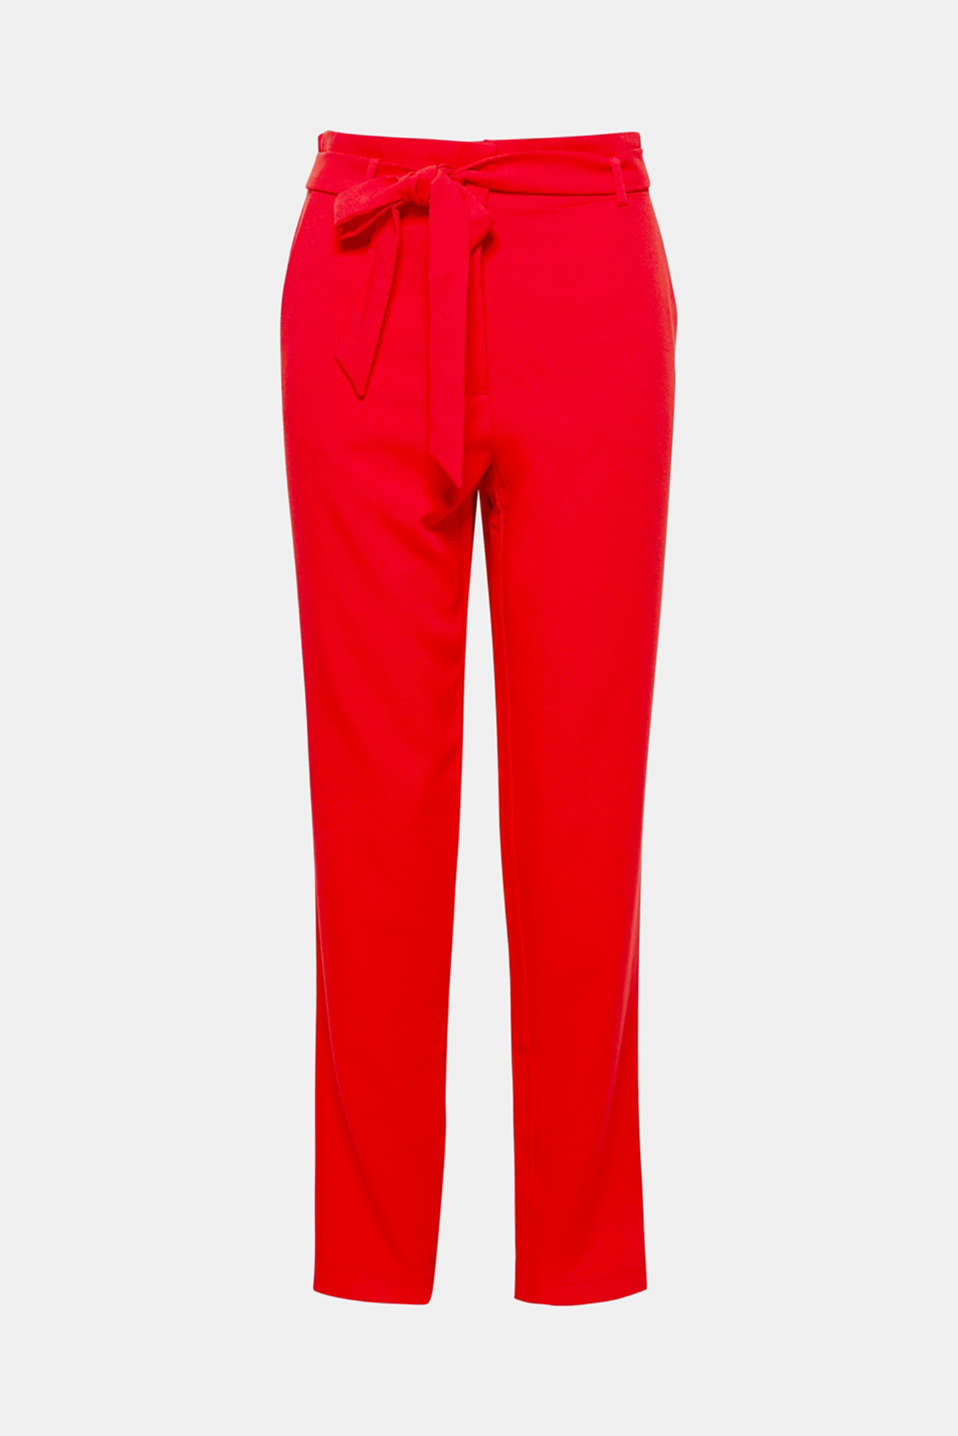 These cropped trousers wow with elegant crêpe fabric and a stretchy paper bag waistband with a tie-around belt.